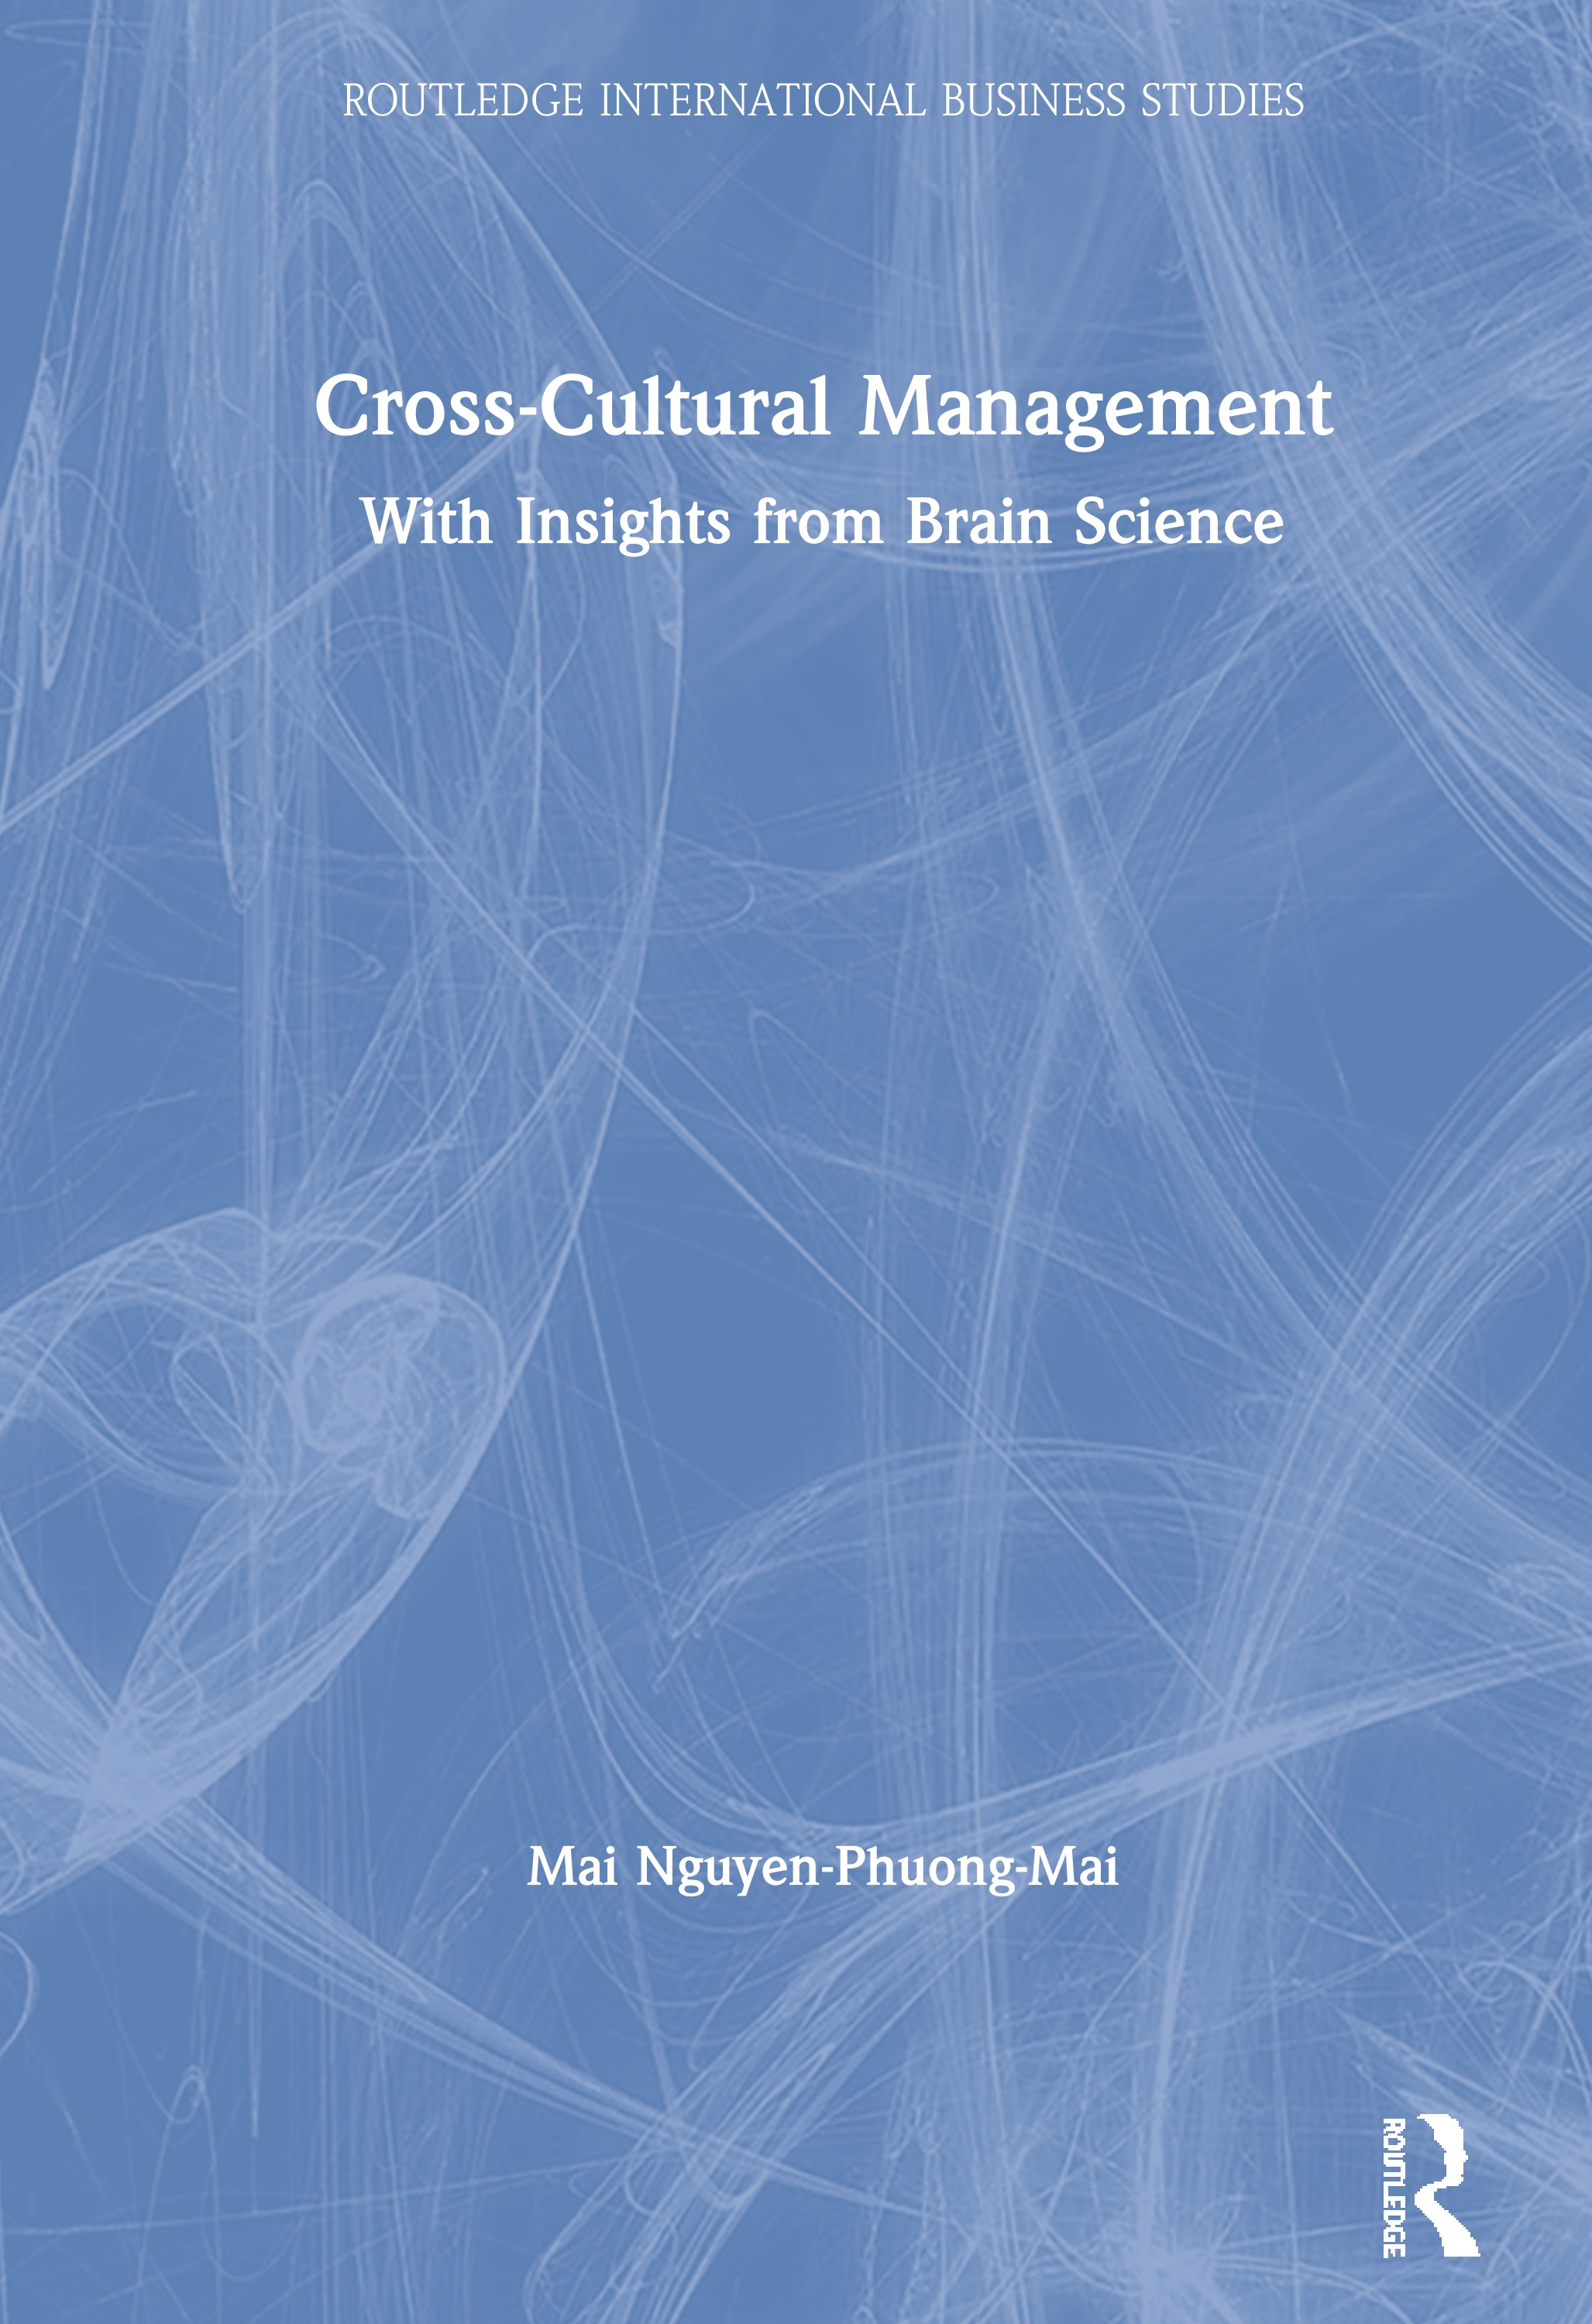 Cross-Cultural Management: With Insights from Brain Science book cover